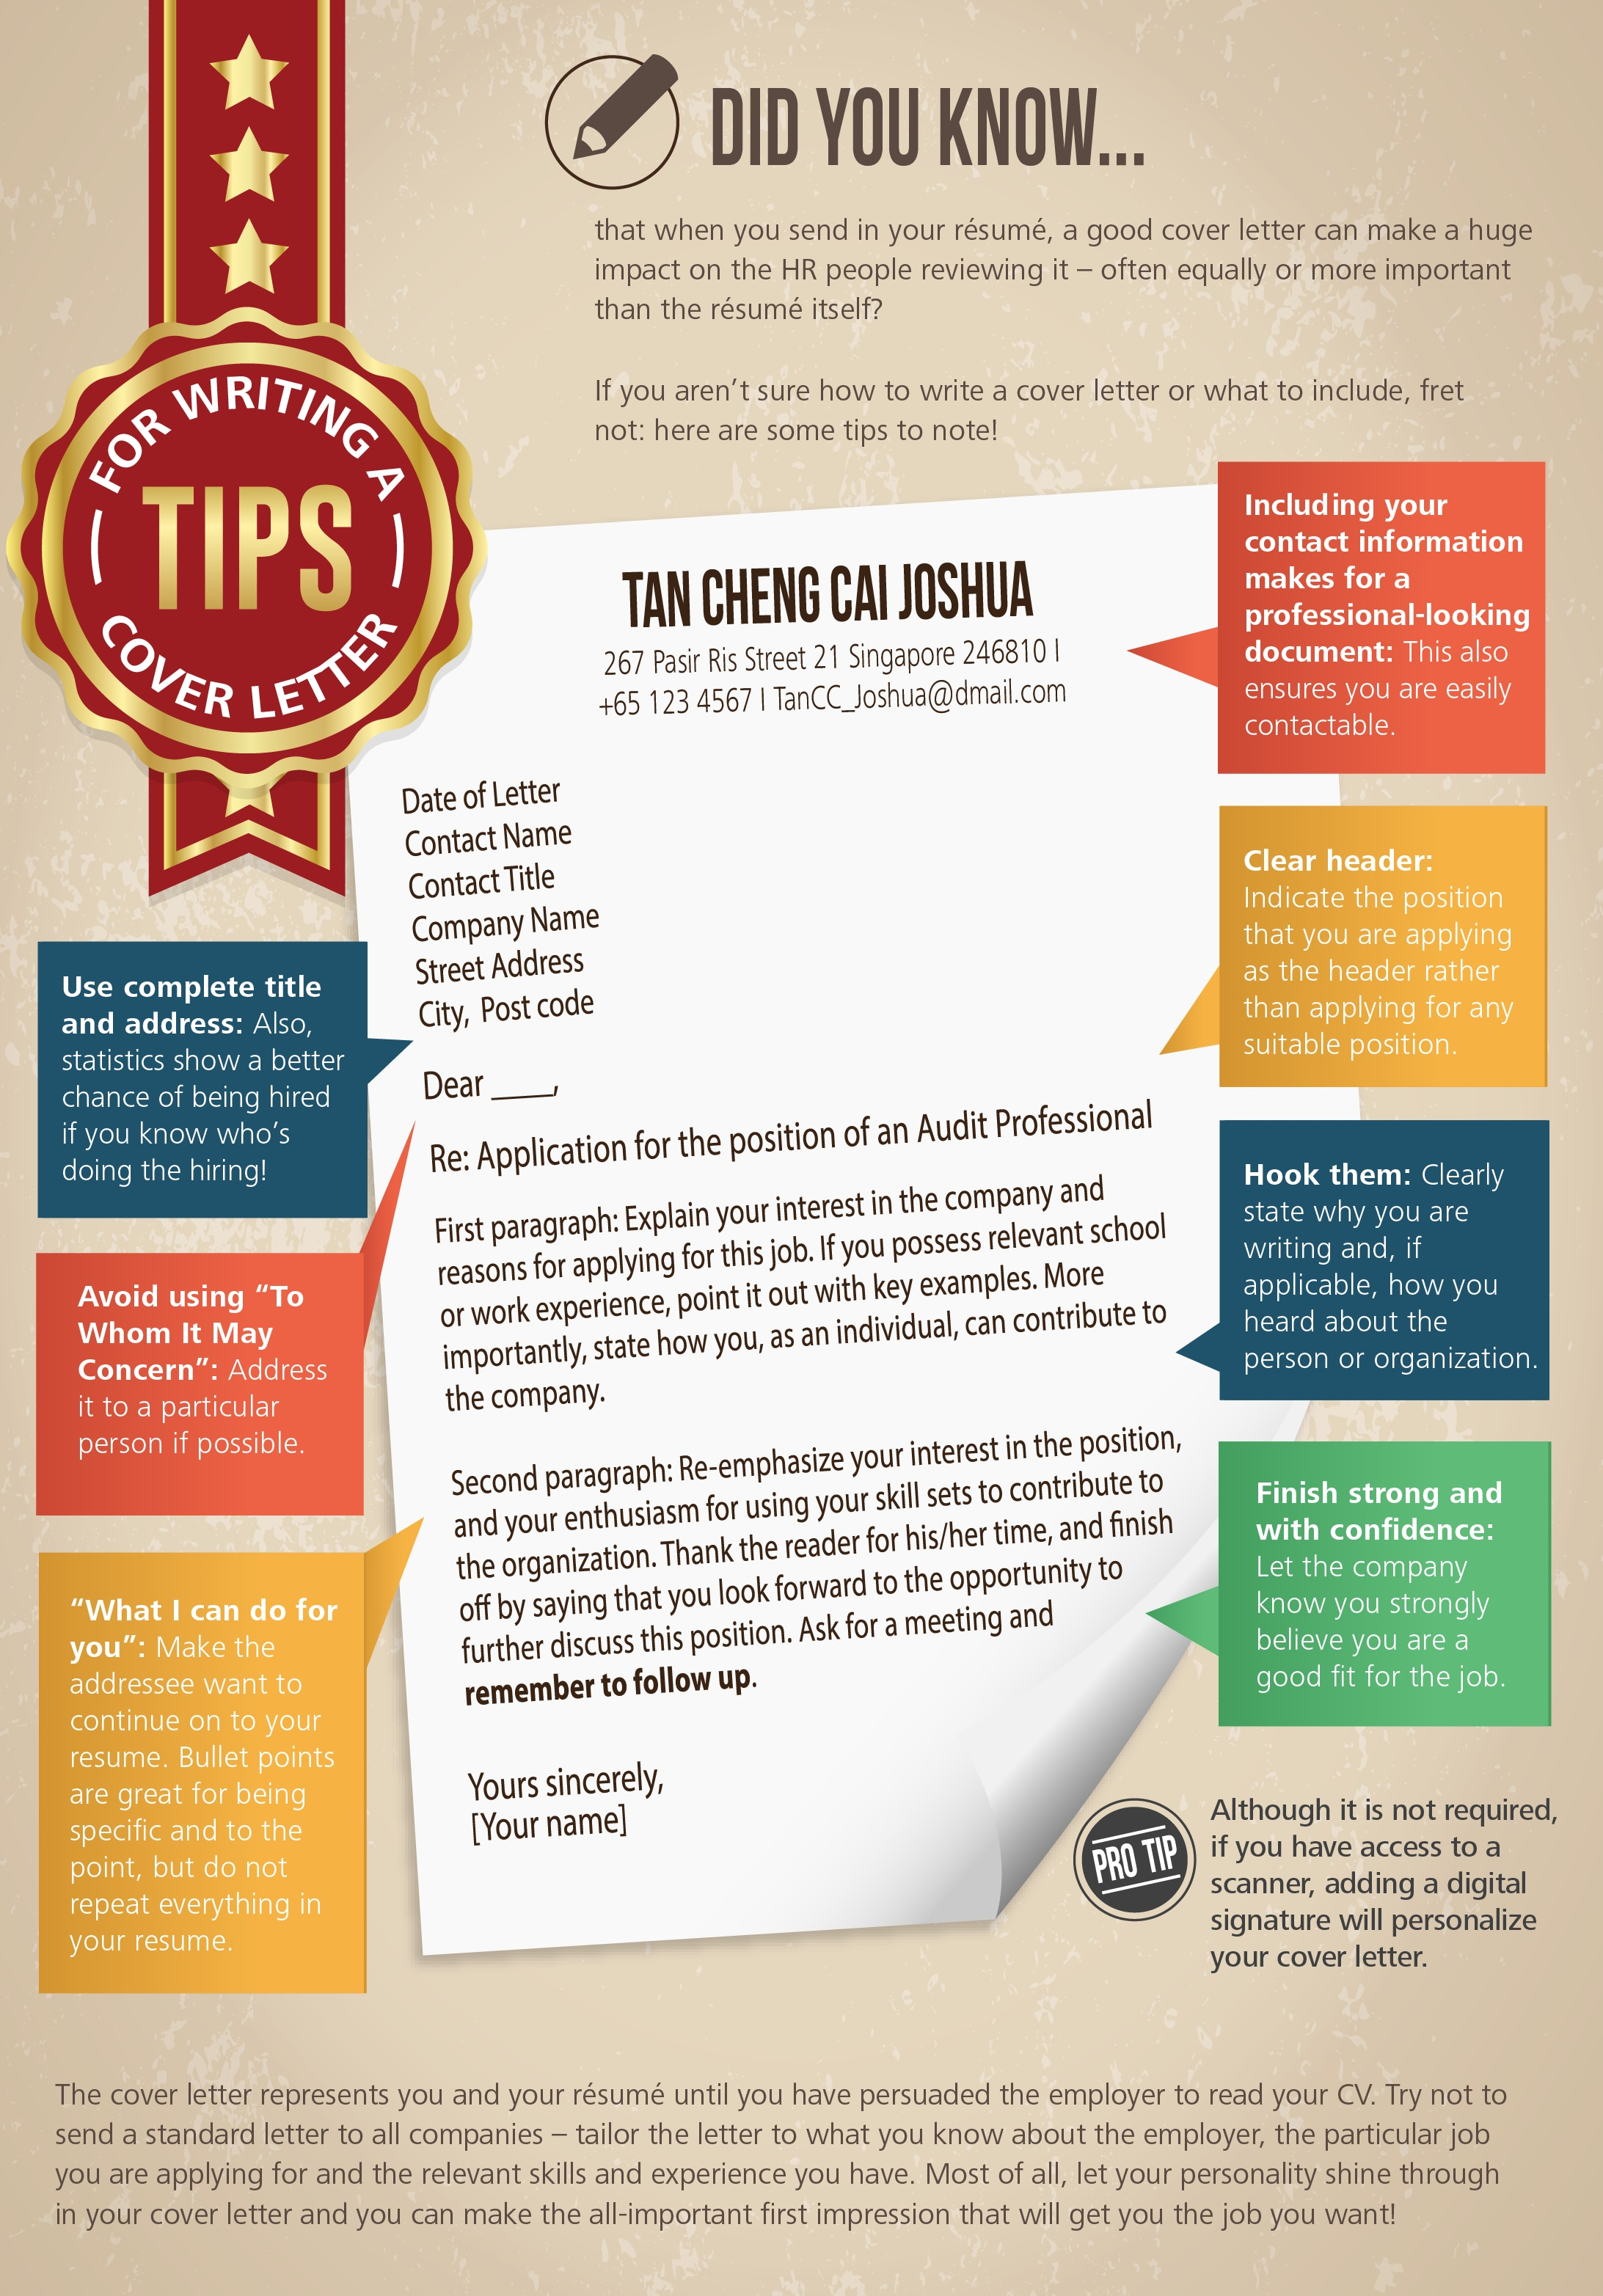 Tips For Writing A Cover Letter  A Good Cover Letter